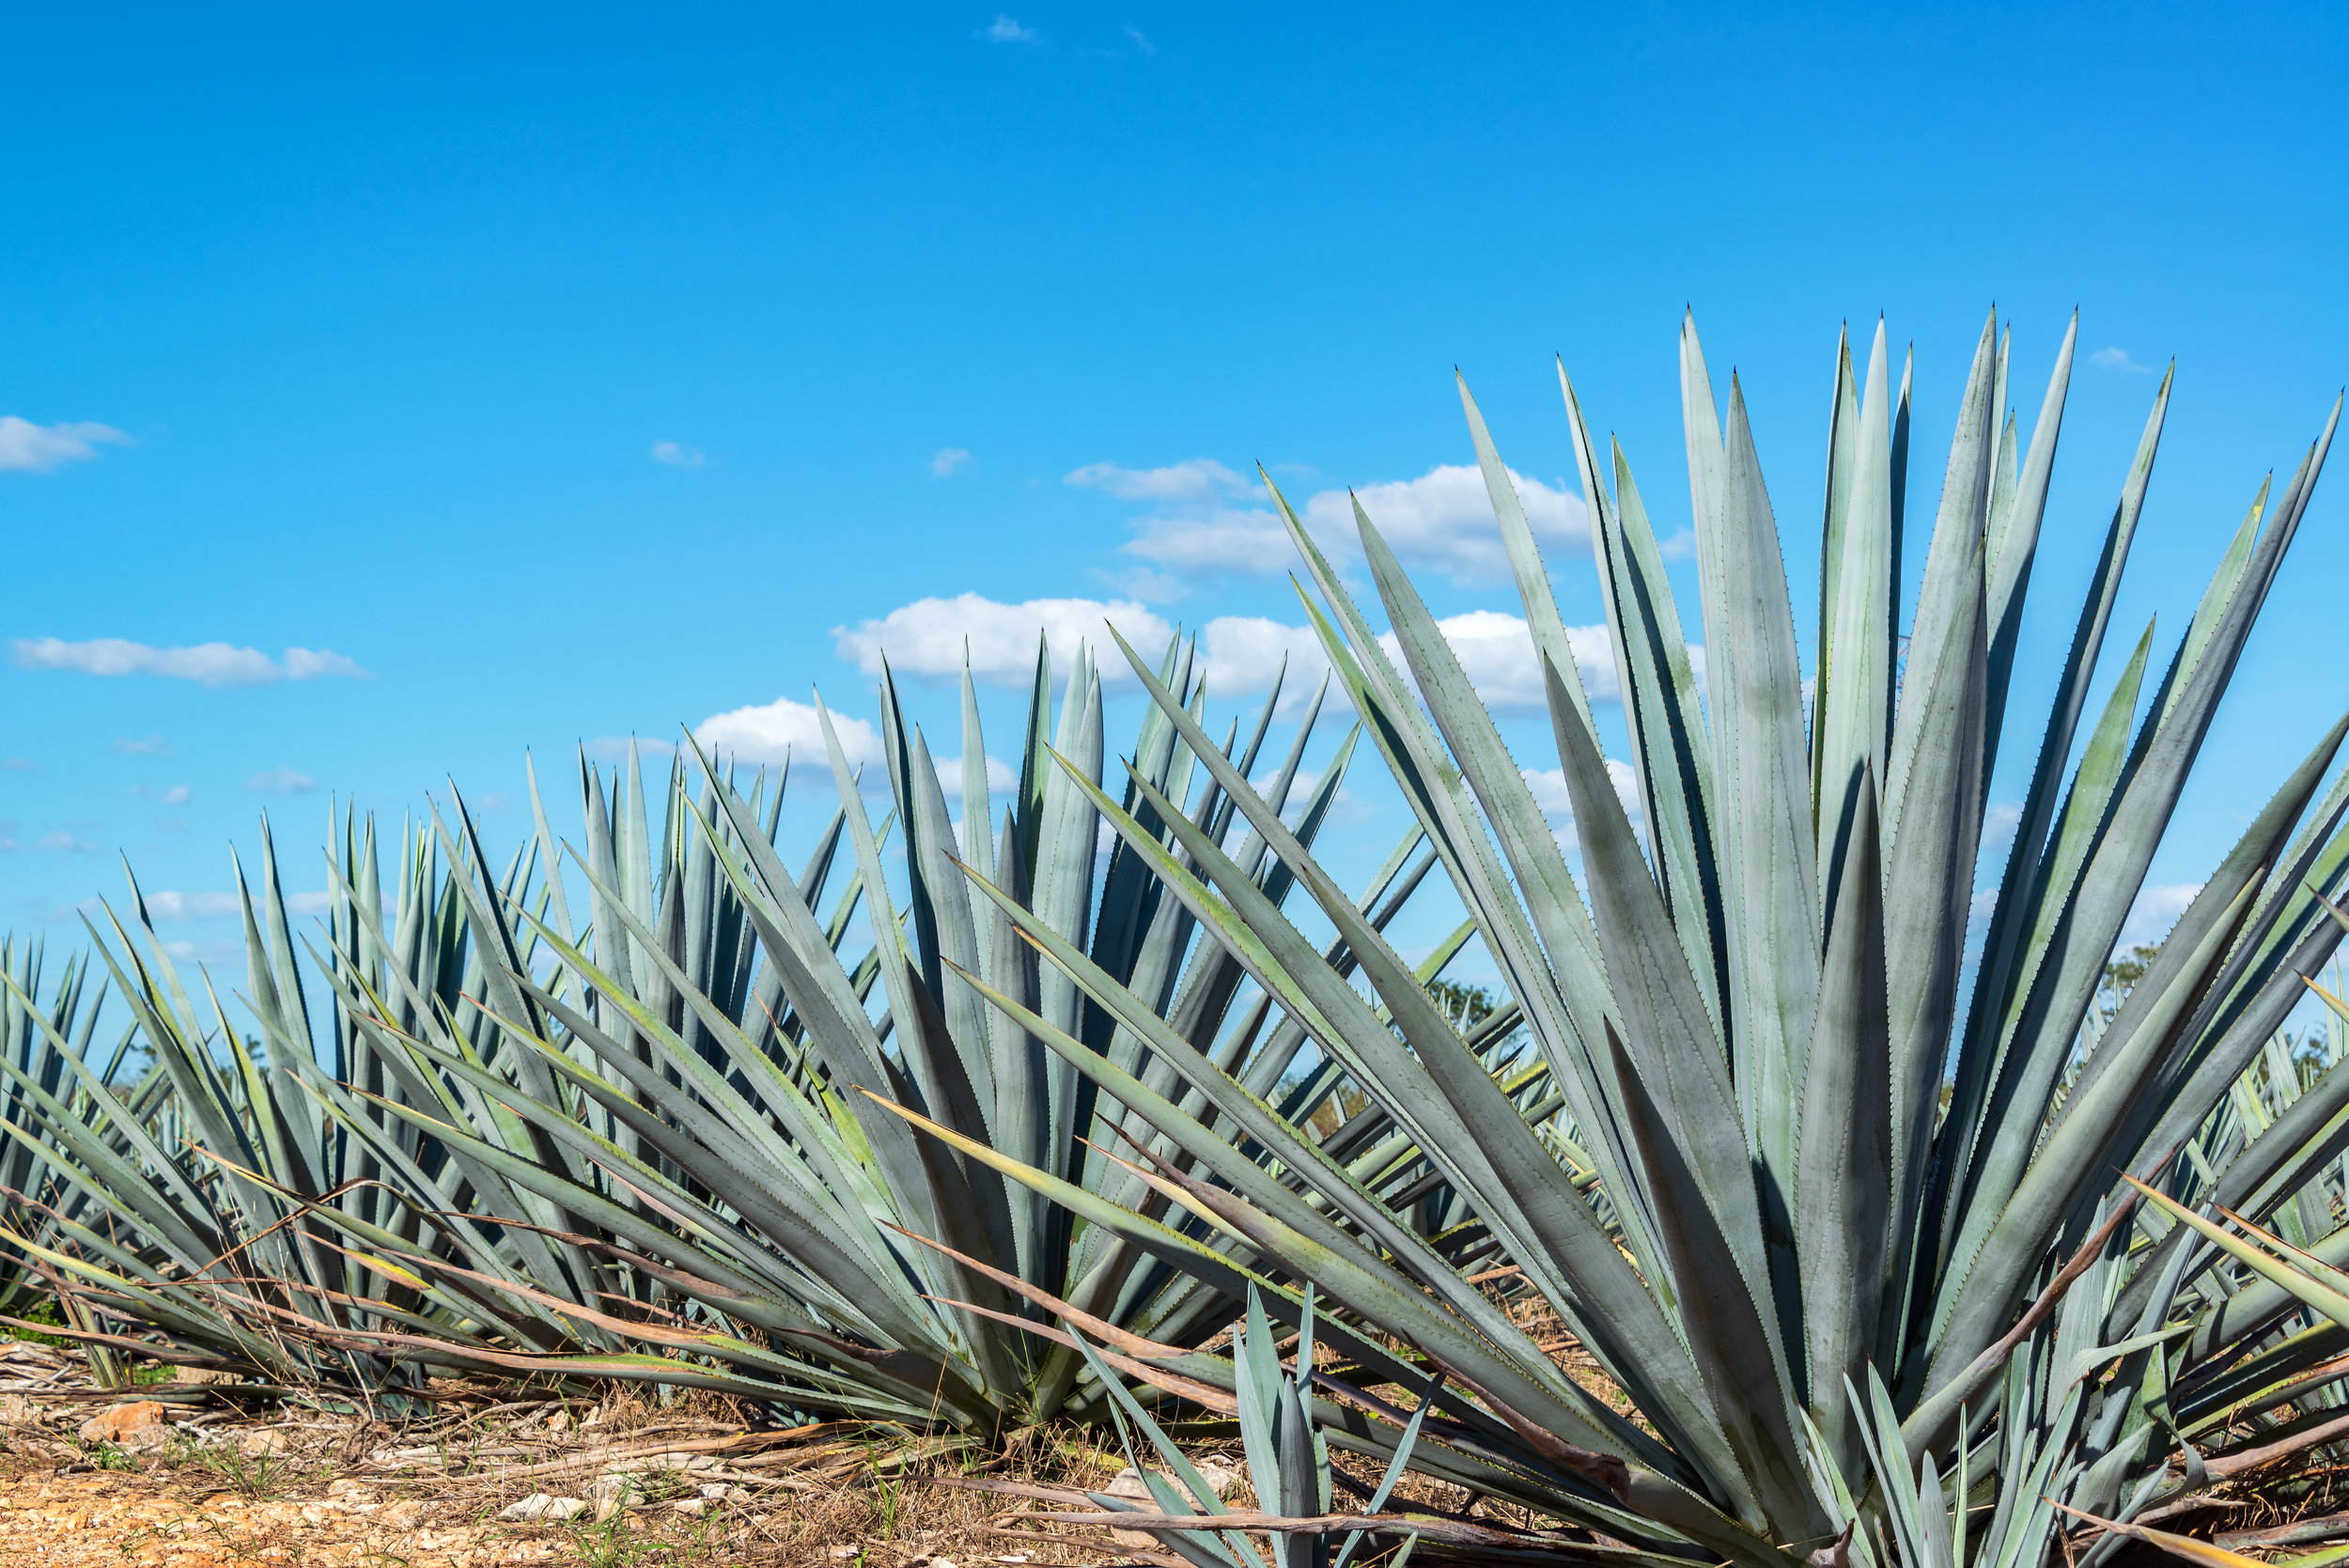 blue-agave-and-blue-sky-PS9MBVG.jpg